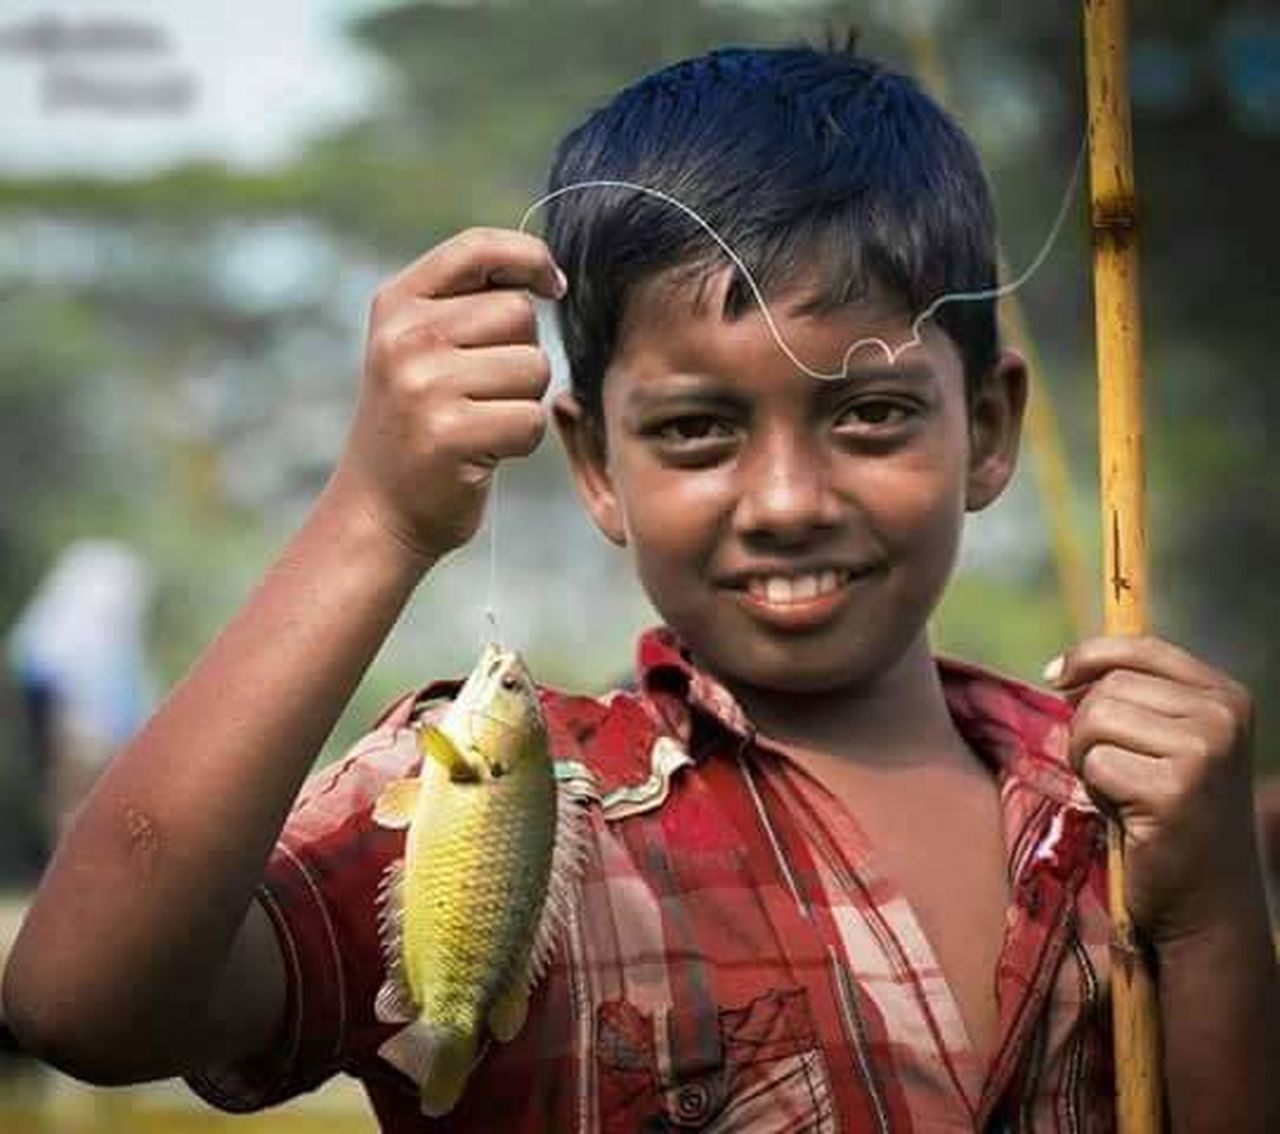 child, holding, childhood, one animal, children only, front view, one person, one girl only, happiness, fish, people, outdoors, girls, portrait, smiling, animal themes, looking at camera, day, trapped, reptile, close-up, freshness, adult